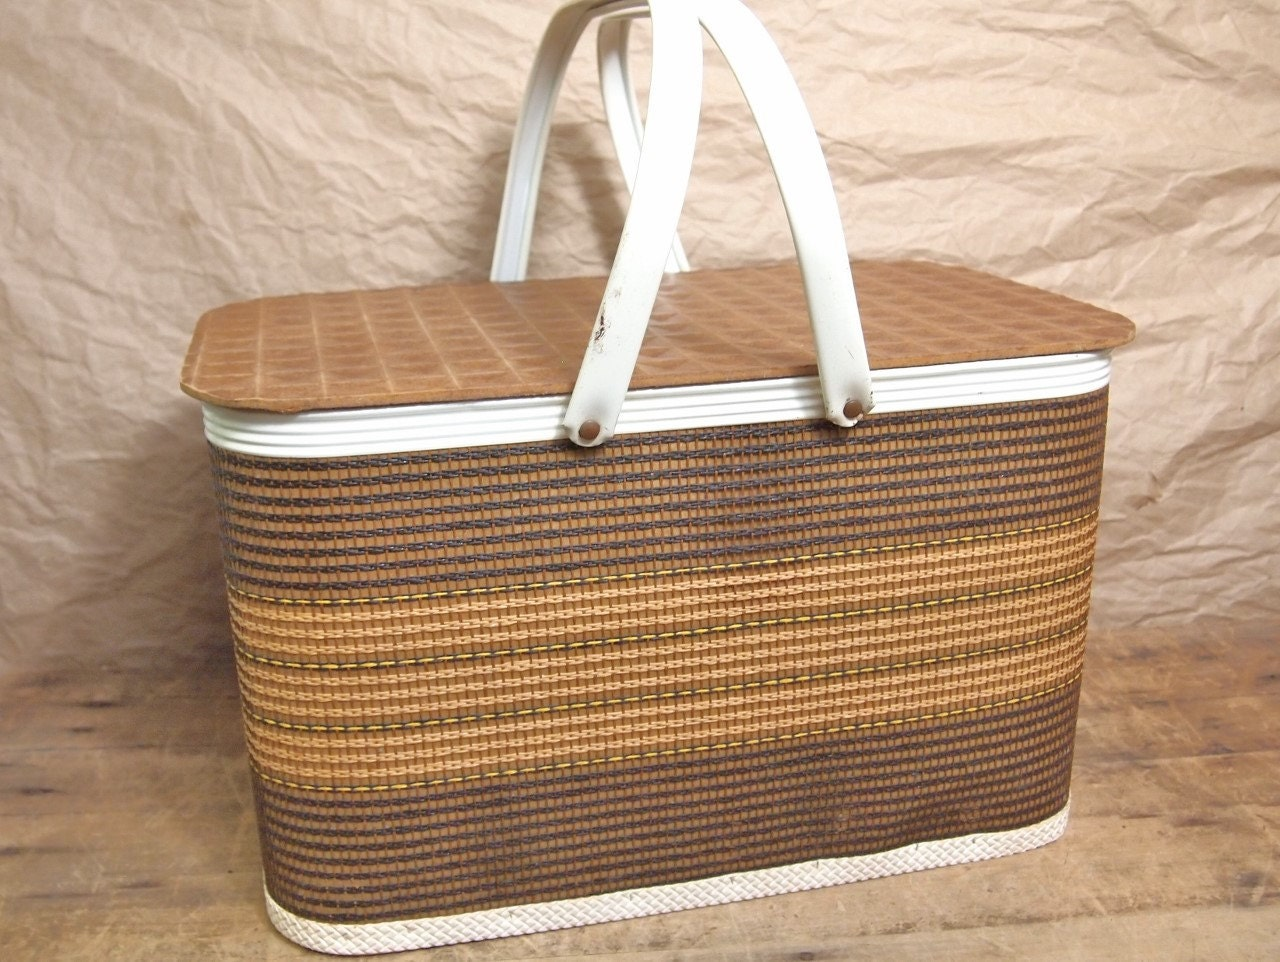 Woven Basket With Hinged Lid : Fun vintage woven picnic basket with hinged lid and by